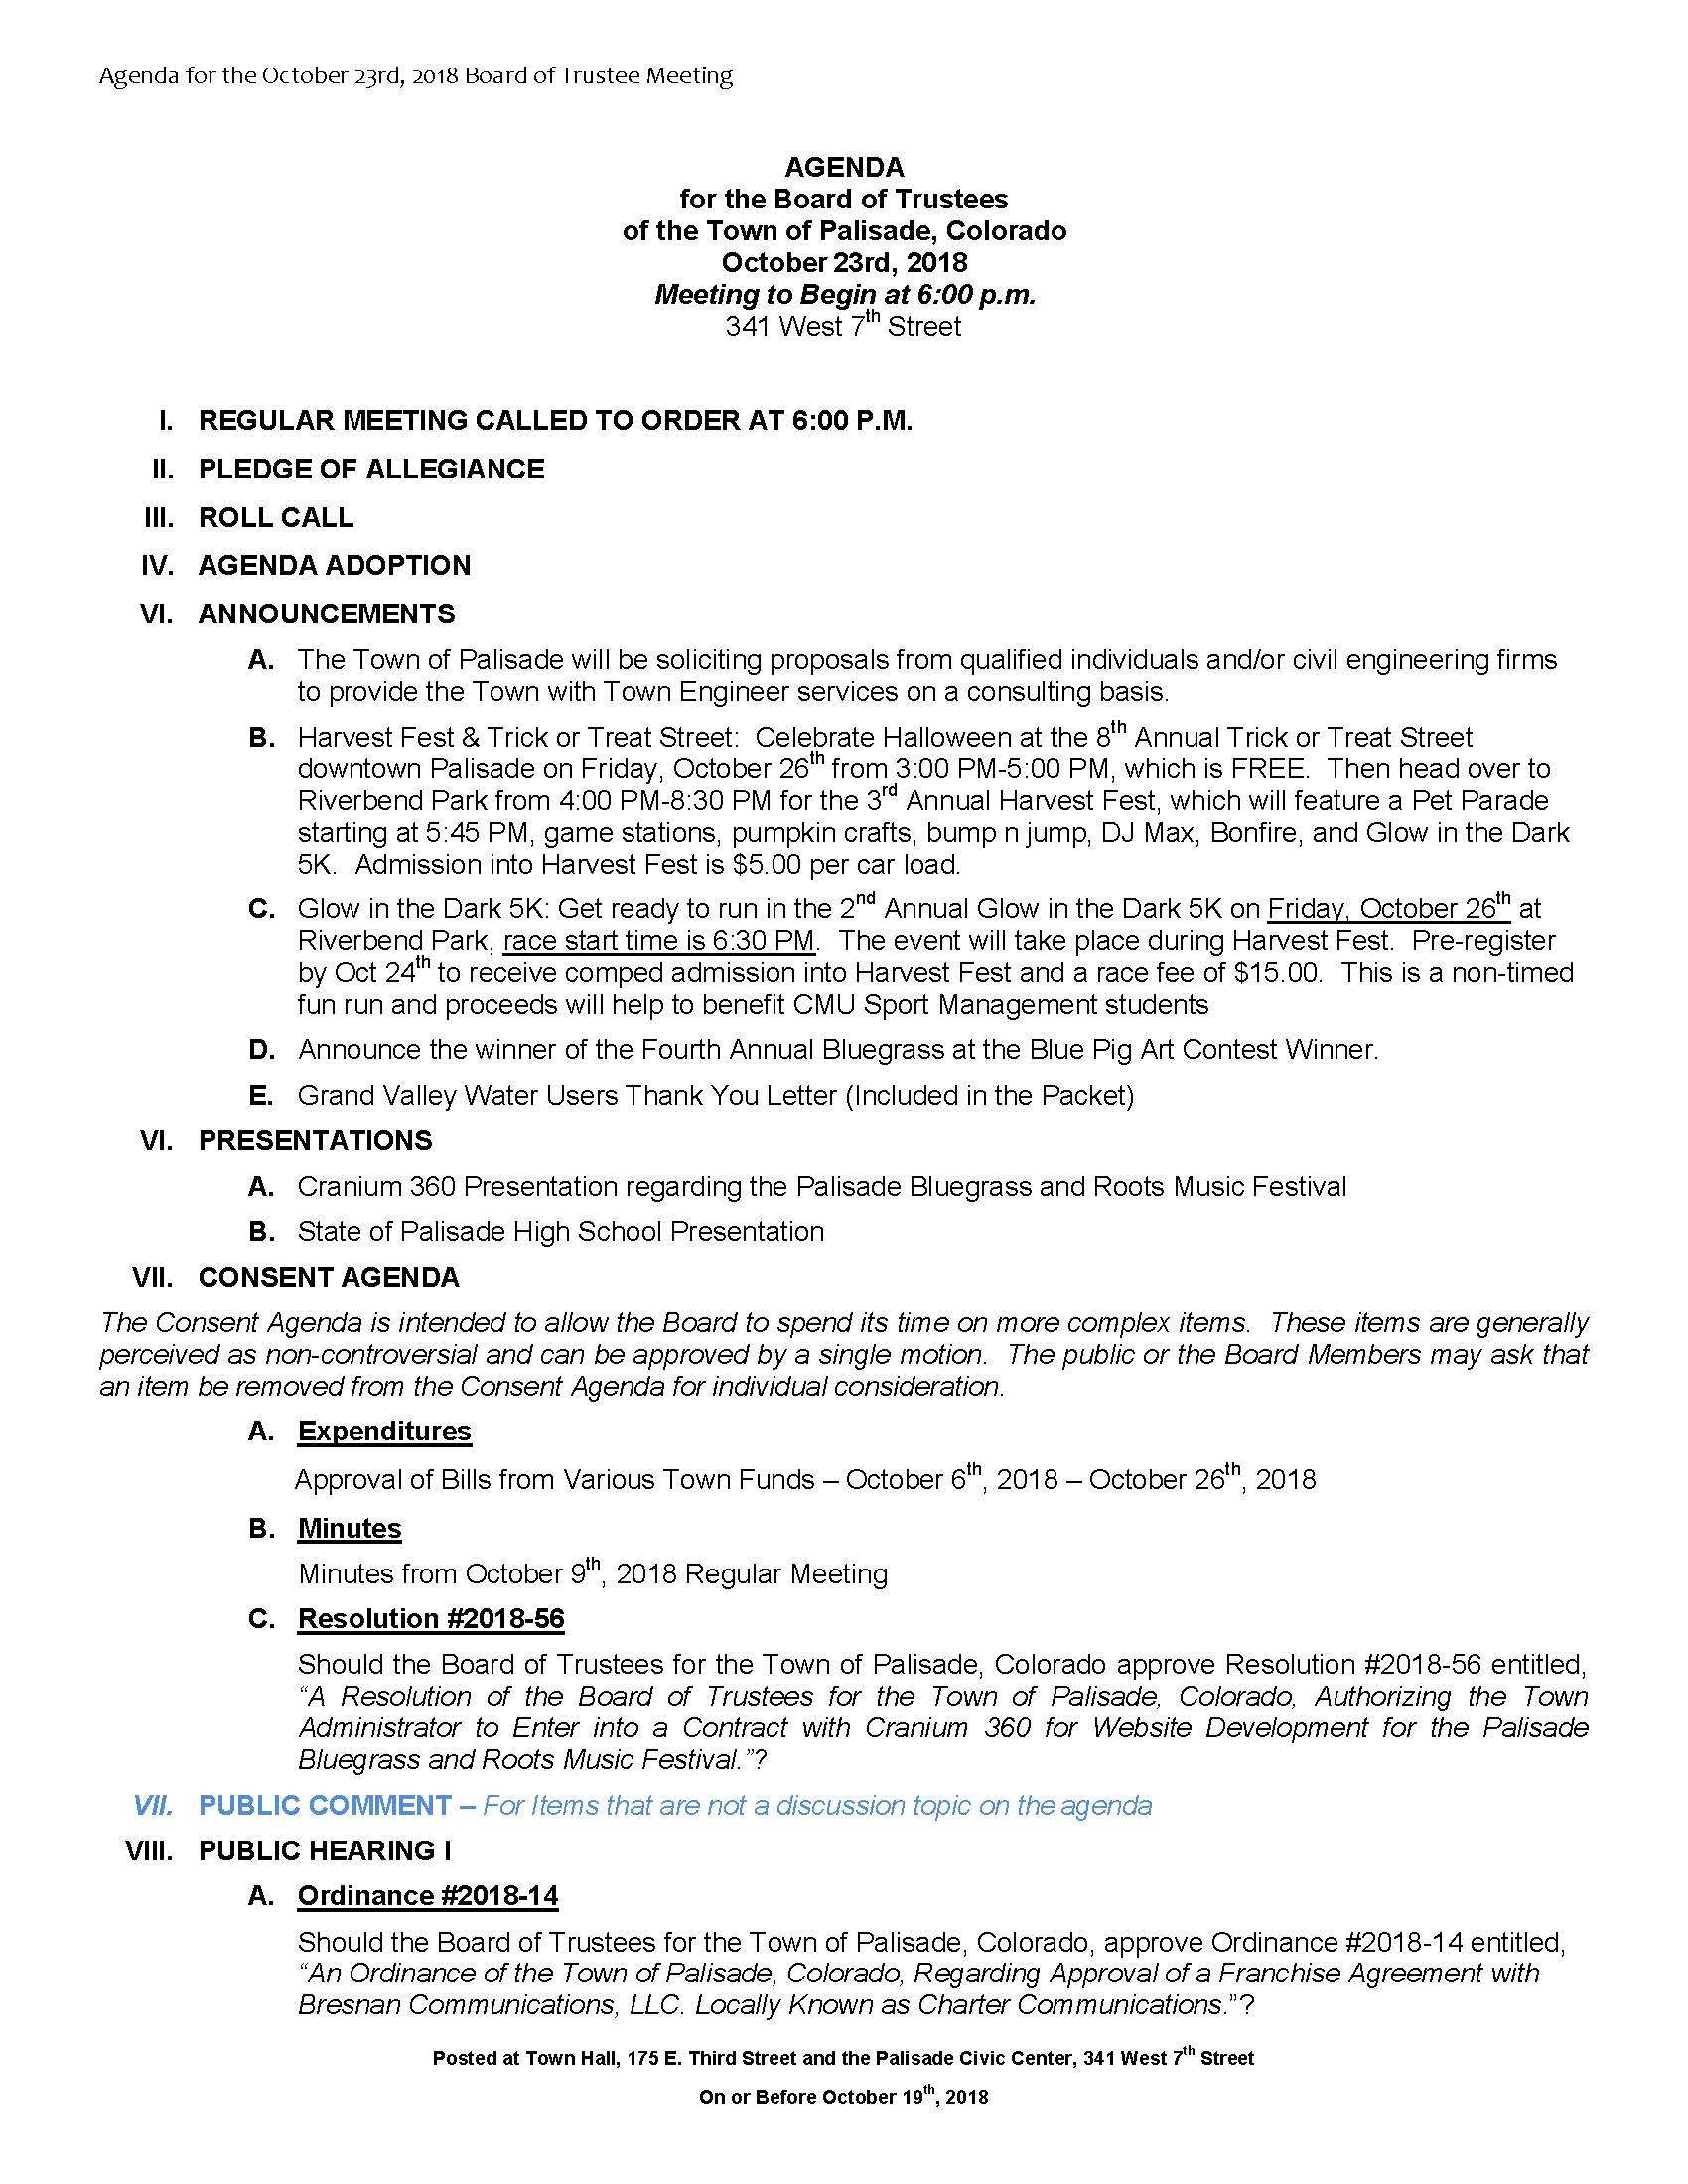 October 23rd 2018 Board Meeting Agenda Page 1